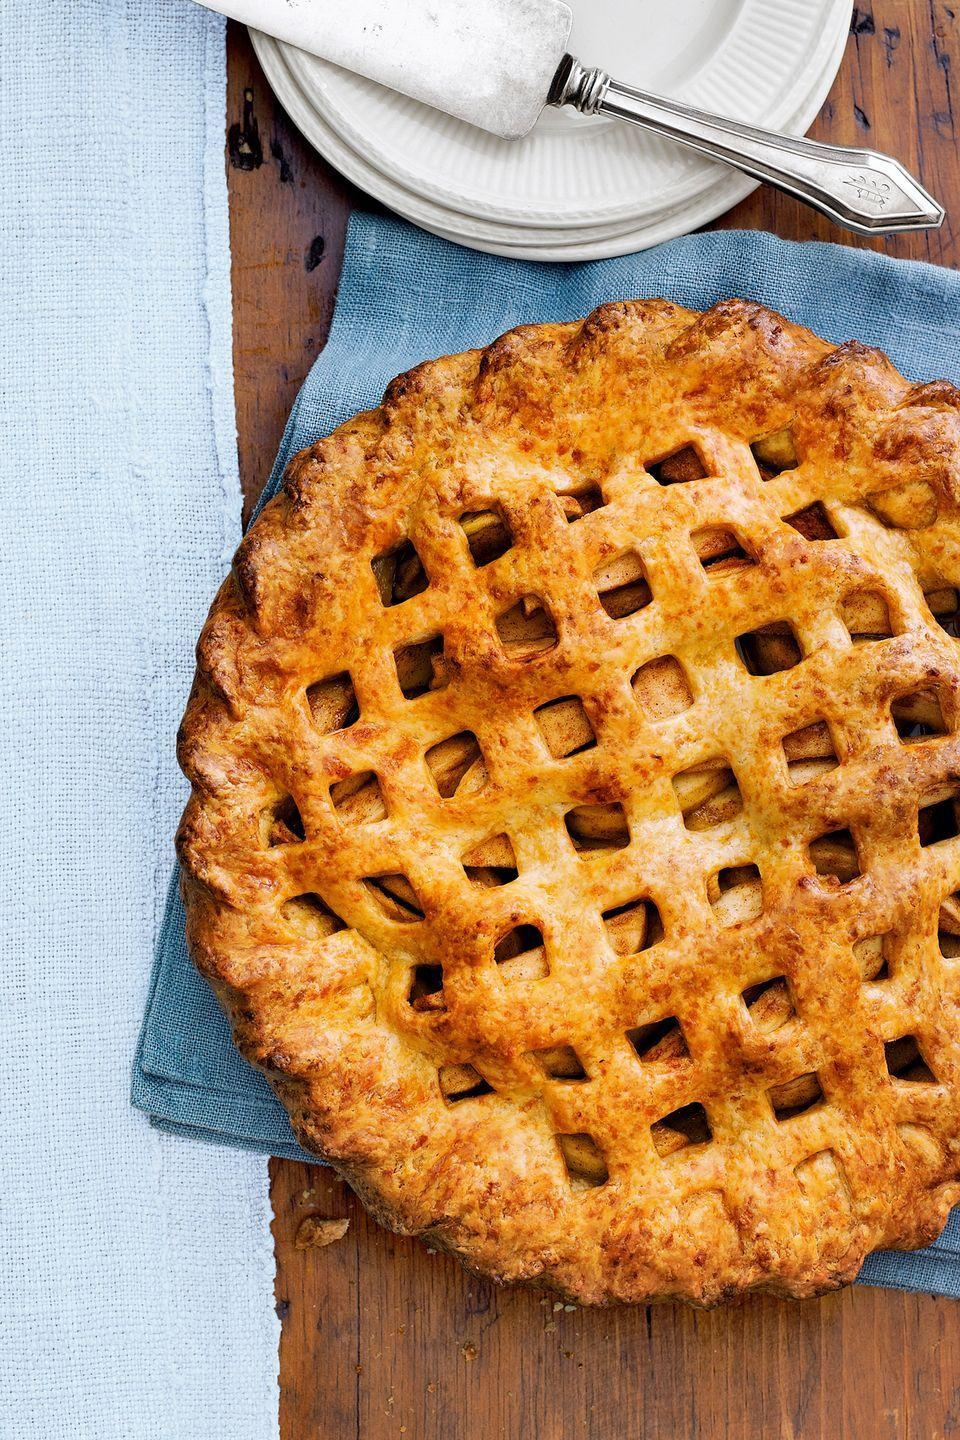 "<p>Make this the year you finally master that gorgeous <a href=""https://www.countryliving.com/food-drinks/g937/perfect-pie-crust-0410/"" rel=""nofollow noopener"" target=""_blank"" data-ylk=""slk:lattice top"" class=""link rapid-noclick-resp"">lattice top</a>. </p><p><strong><a href=""https://www.countryliving.com/food-drinks/recipes/a4247/cheddar-apple-pie-recipe-clx1013/"" rel=""nofollow noopener"" target=""_blank"" data-ylk=""slk:Get the recipe"" class=""link rapid-noclick-resp"">Get the recipe</a>.</strong></p>"